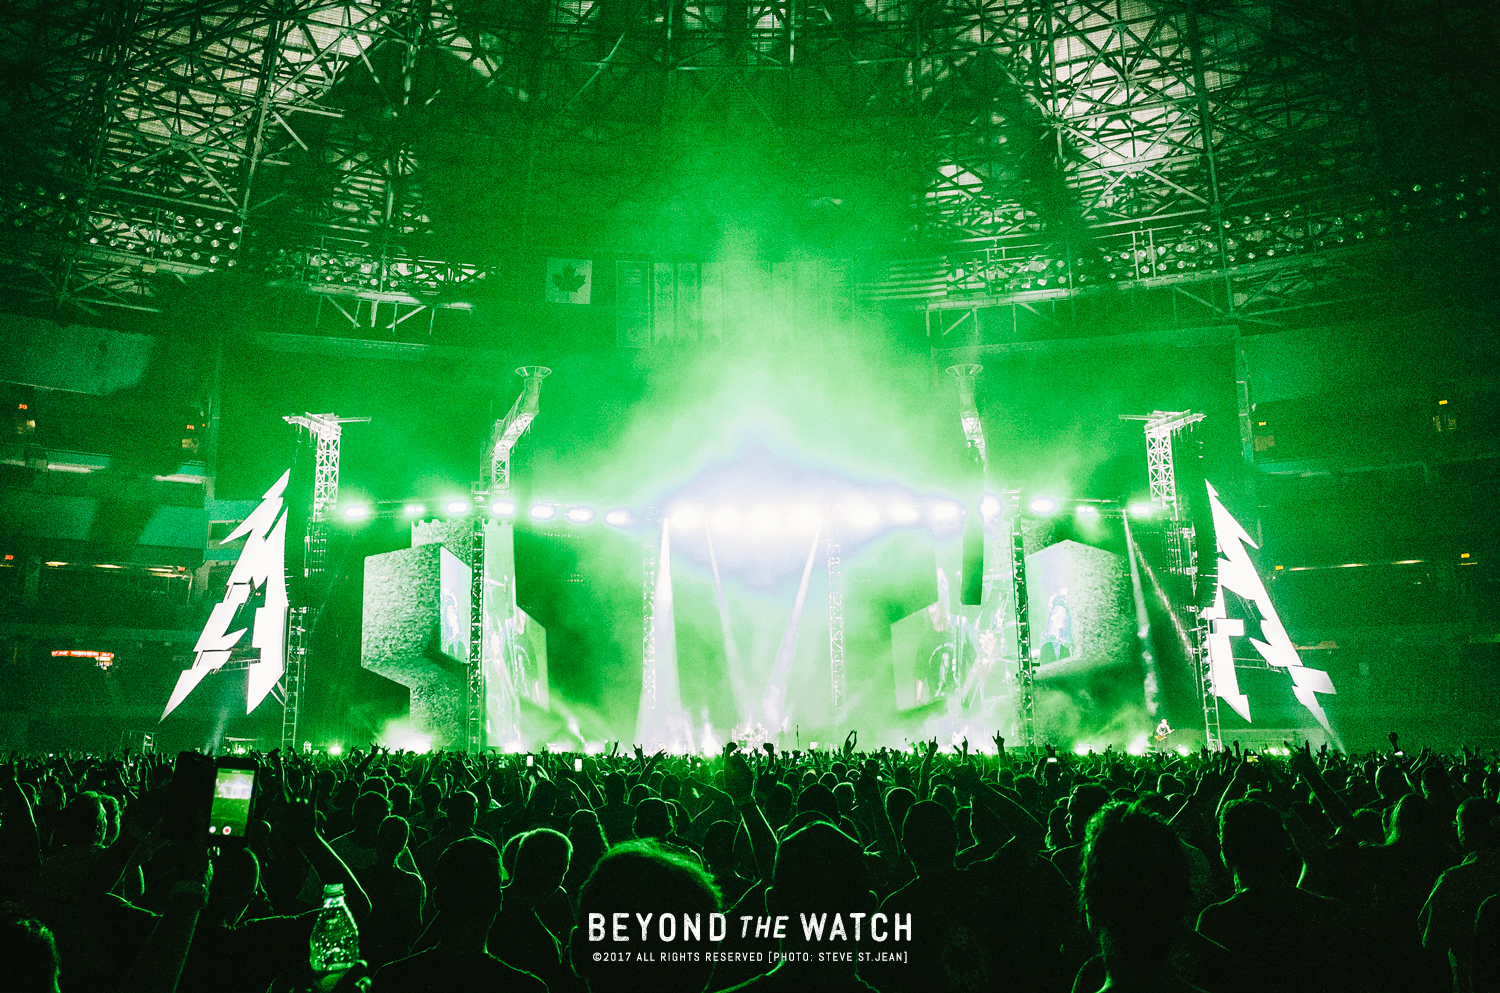 The show must begin! Some epic visuals were displayed the entire set (best visuals and sound were during 'One').